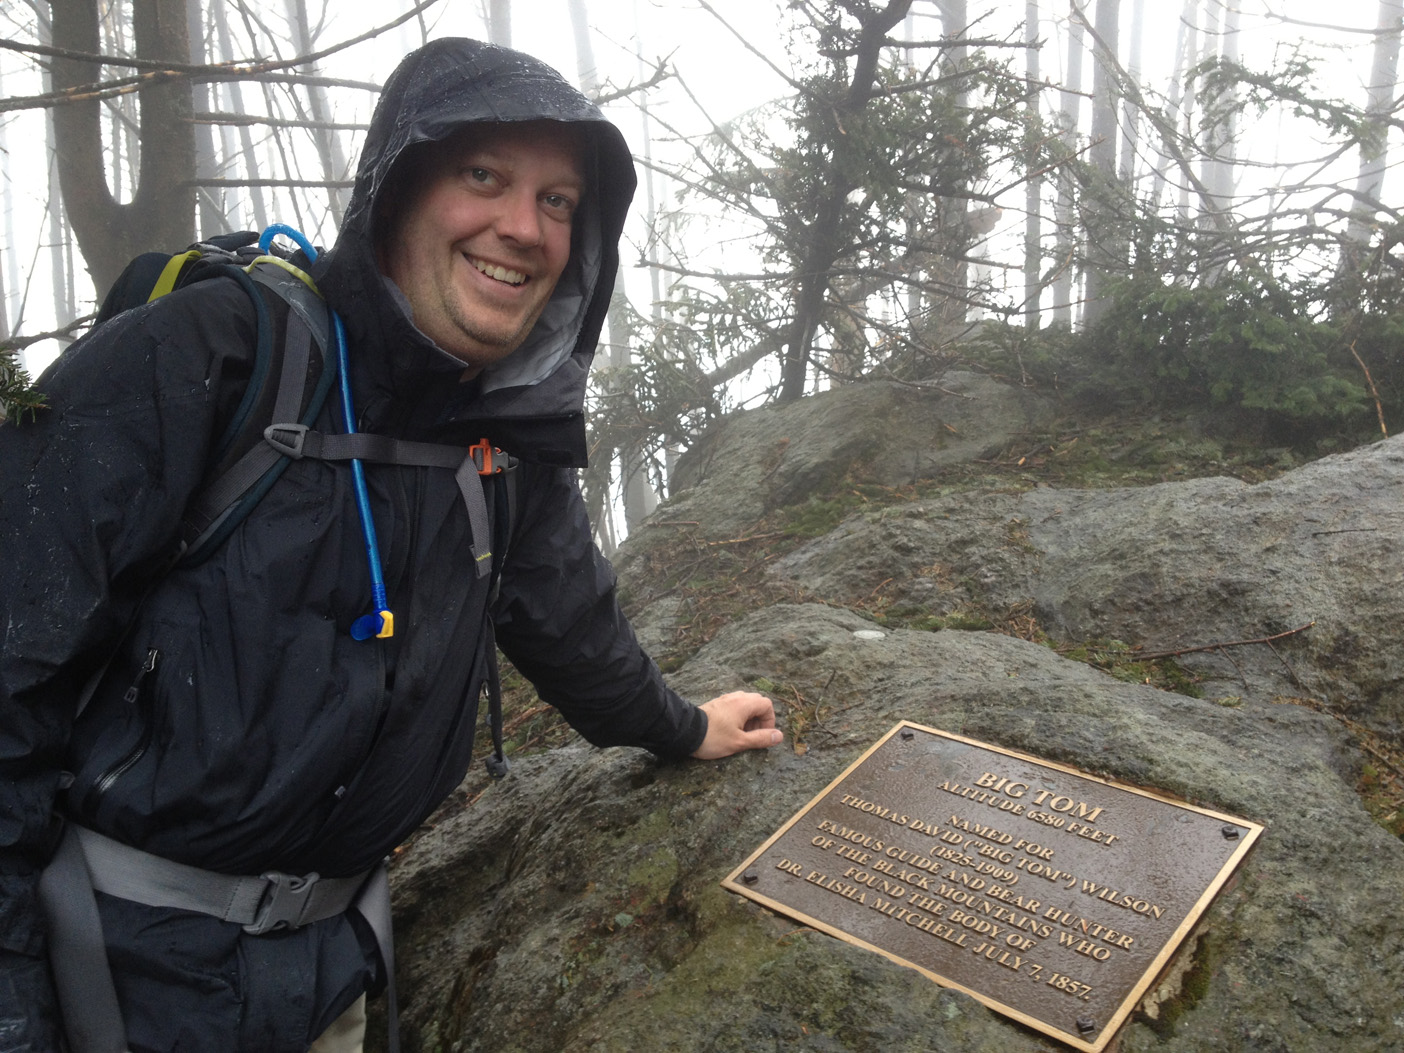 Big Tom summit at 6580', the 4th of 6 of the 6000'+ peaks on the Black Mountain Crest Trail.